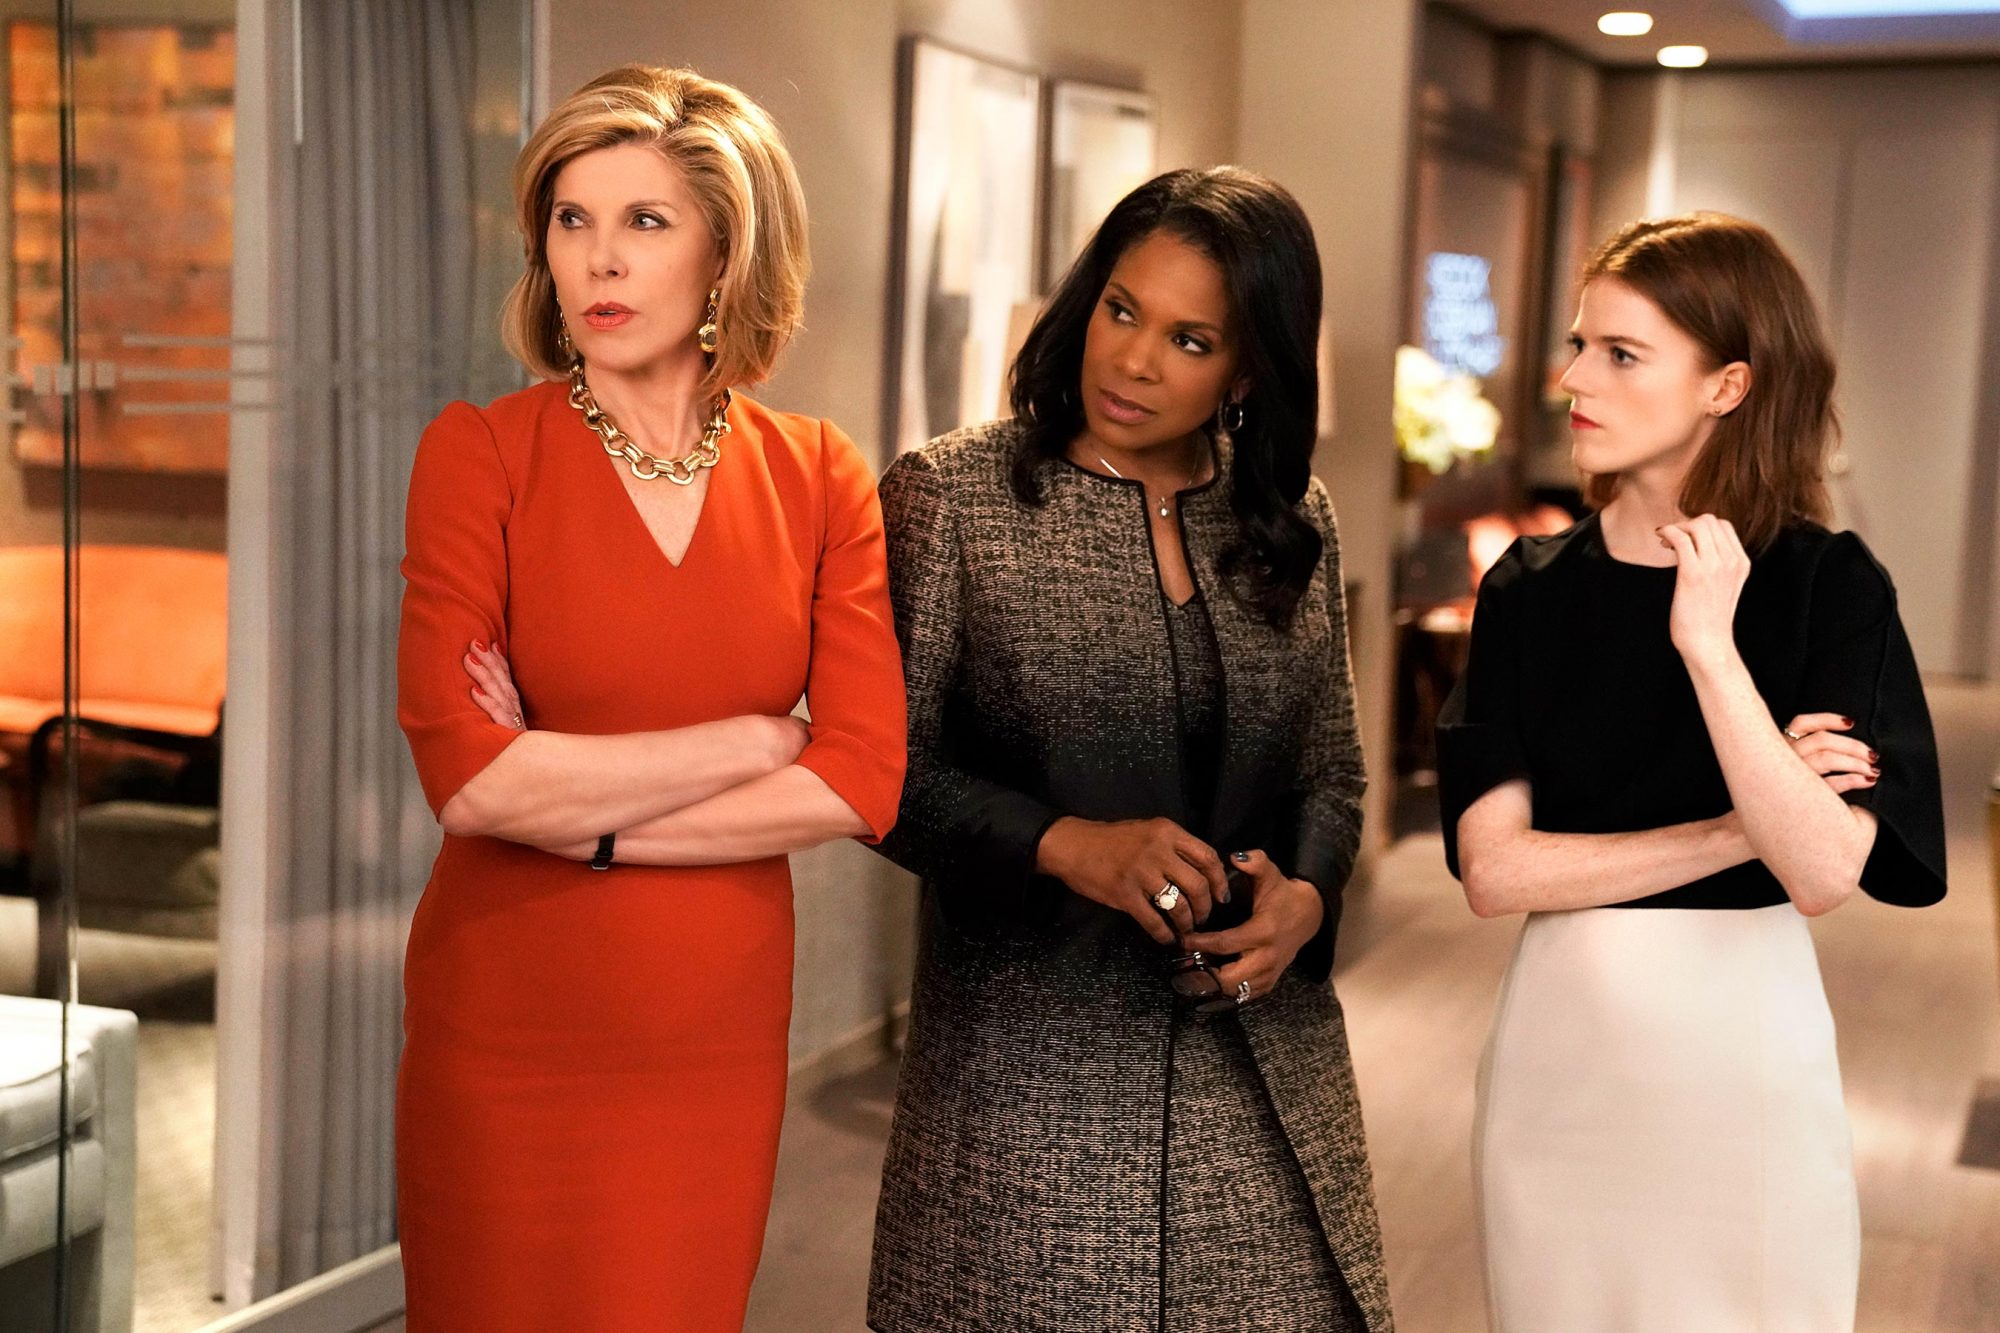 2. The Good Fight (CBS All Access)